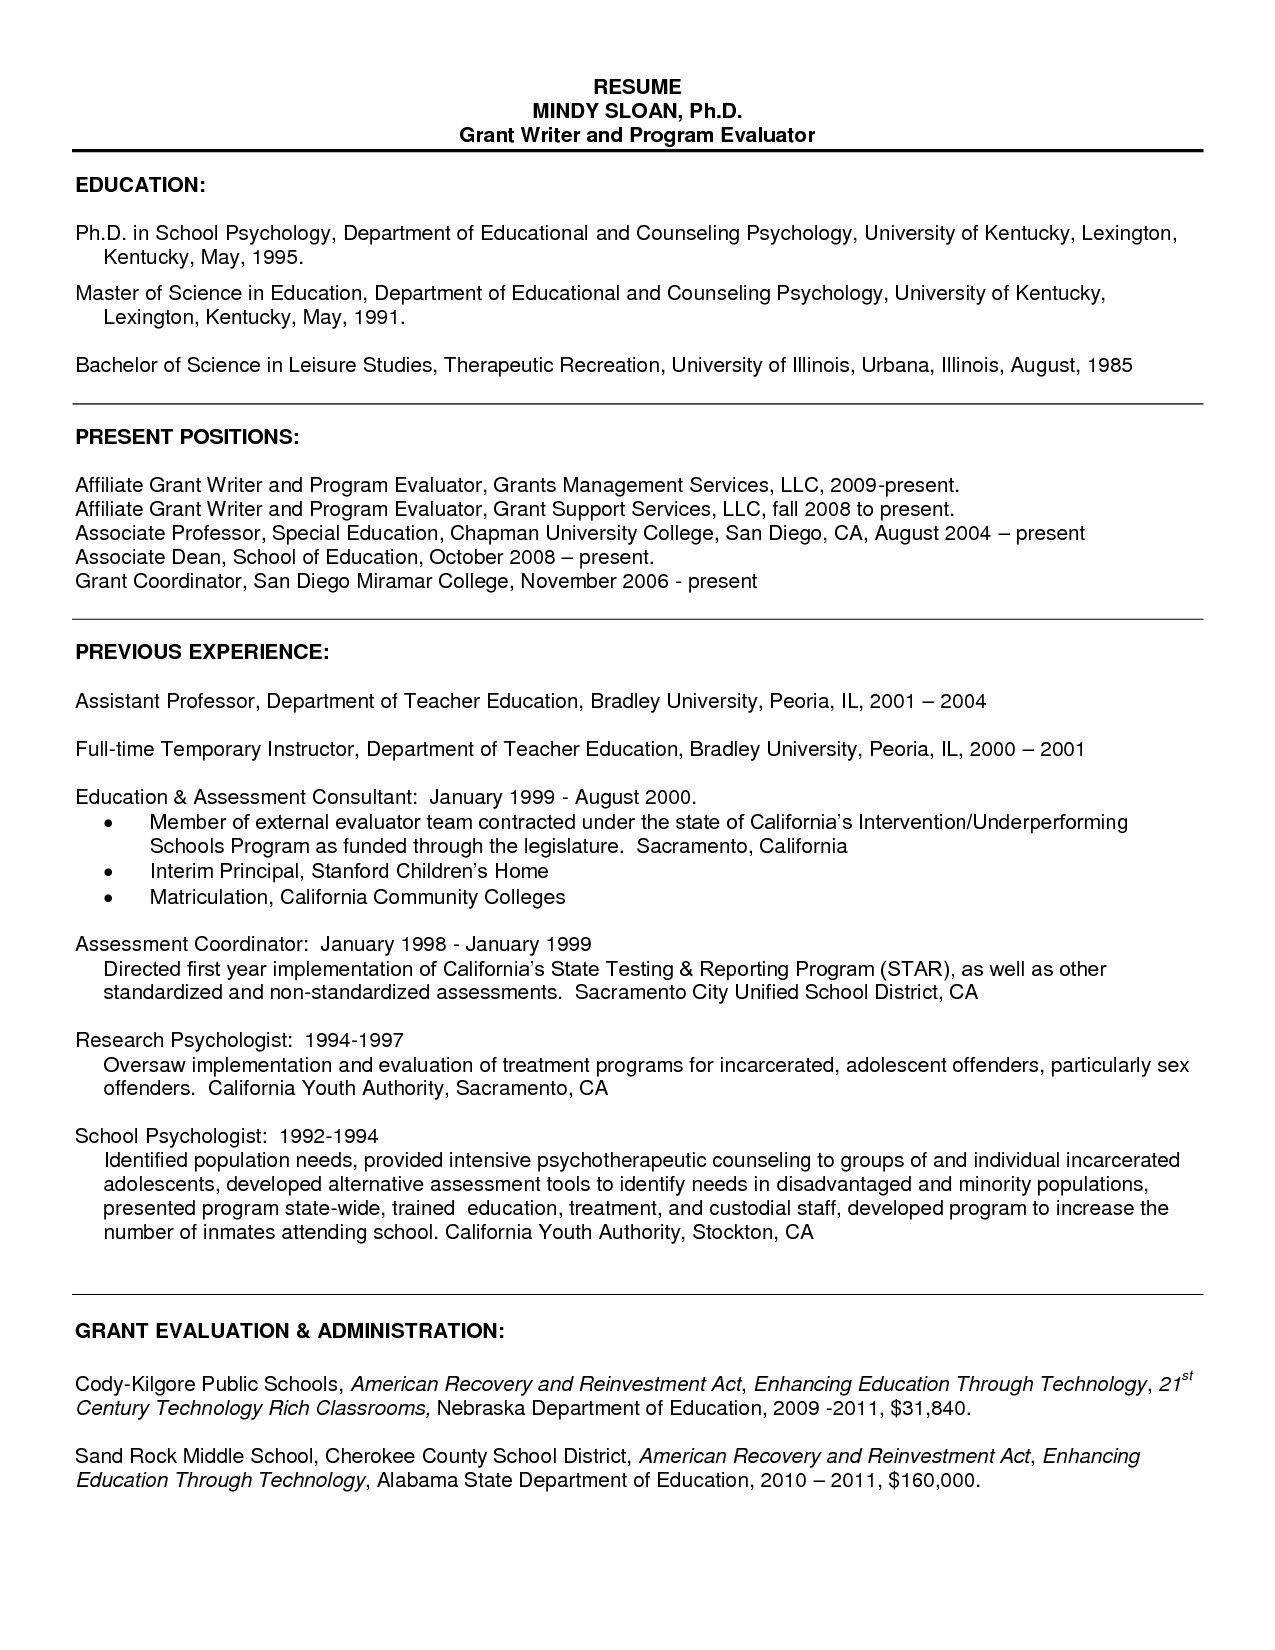 sample resume for psychology graduate jobresumesample com sample resume for psychology graduate jobresumesample com 256